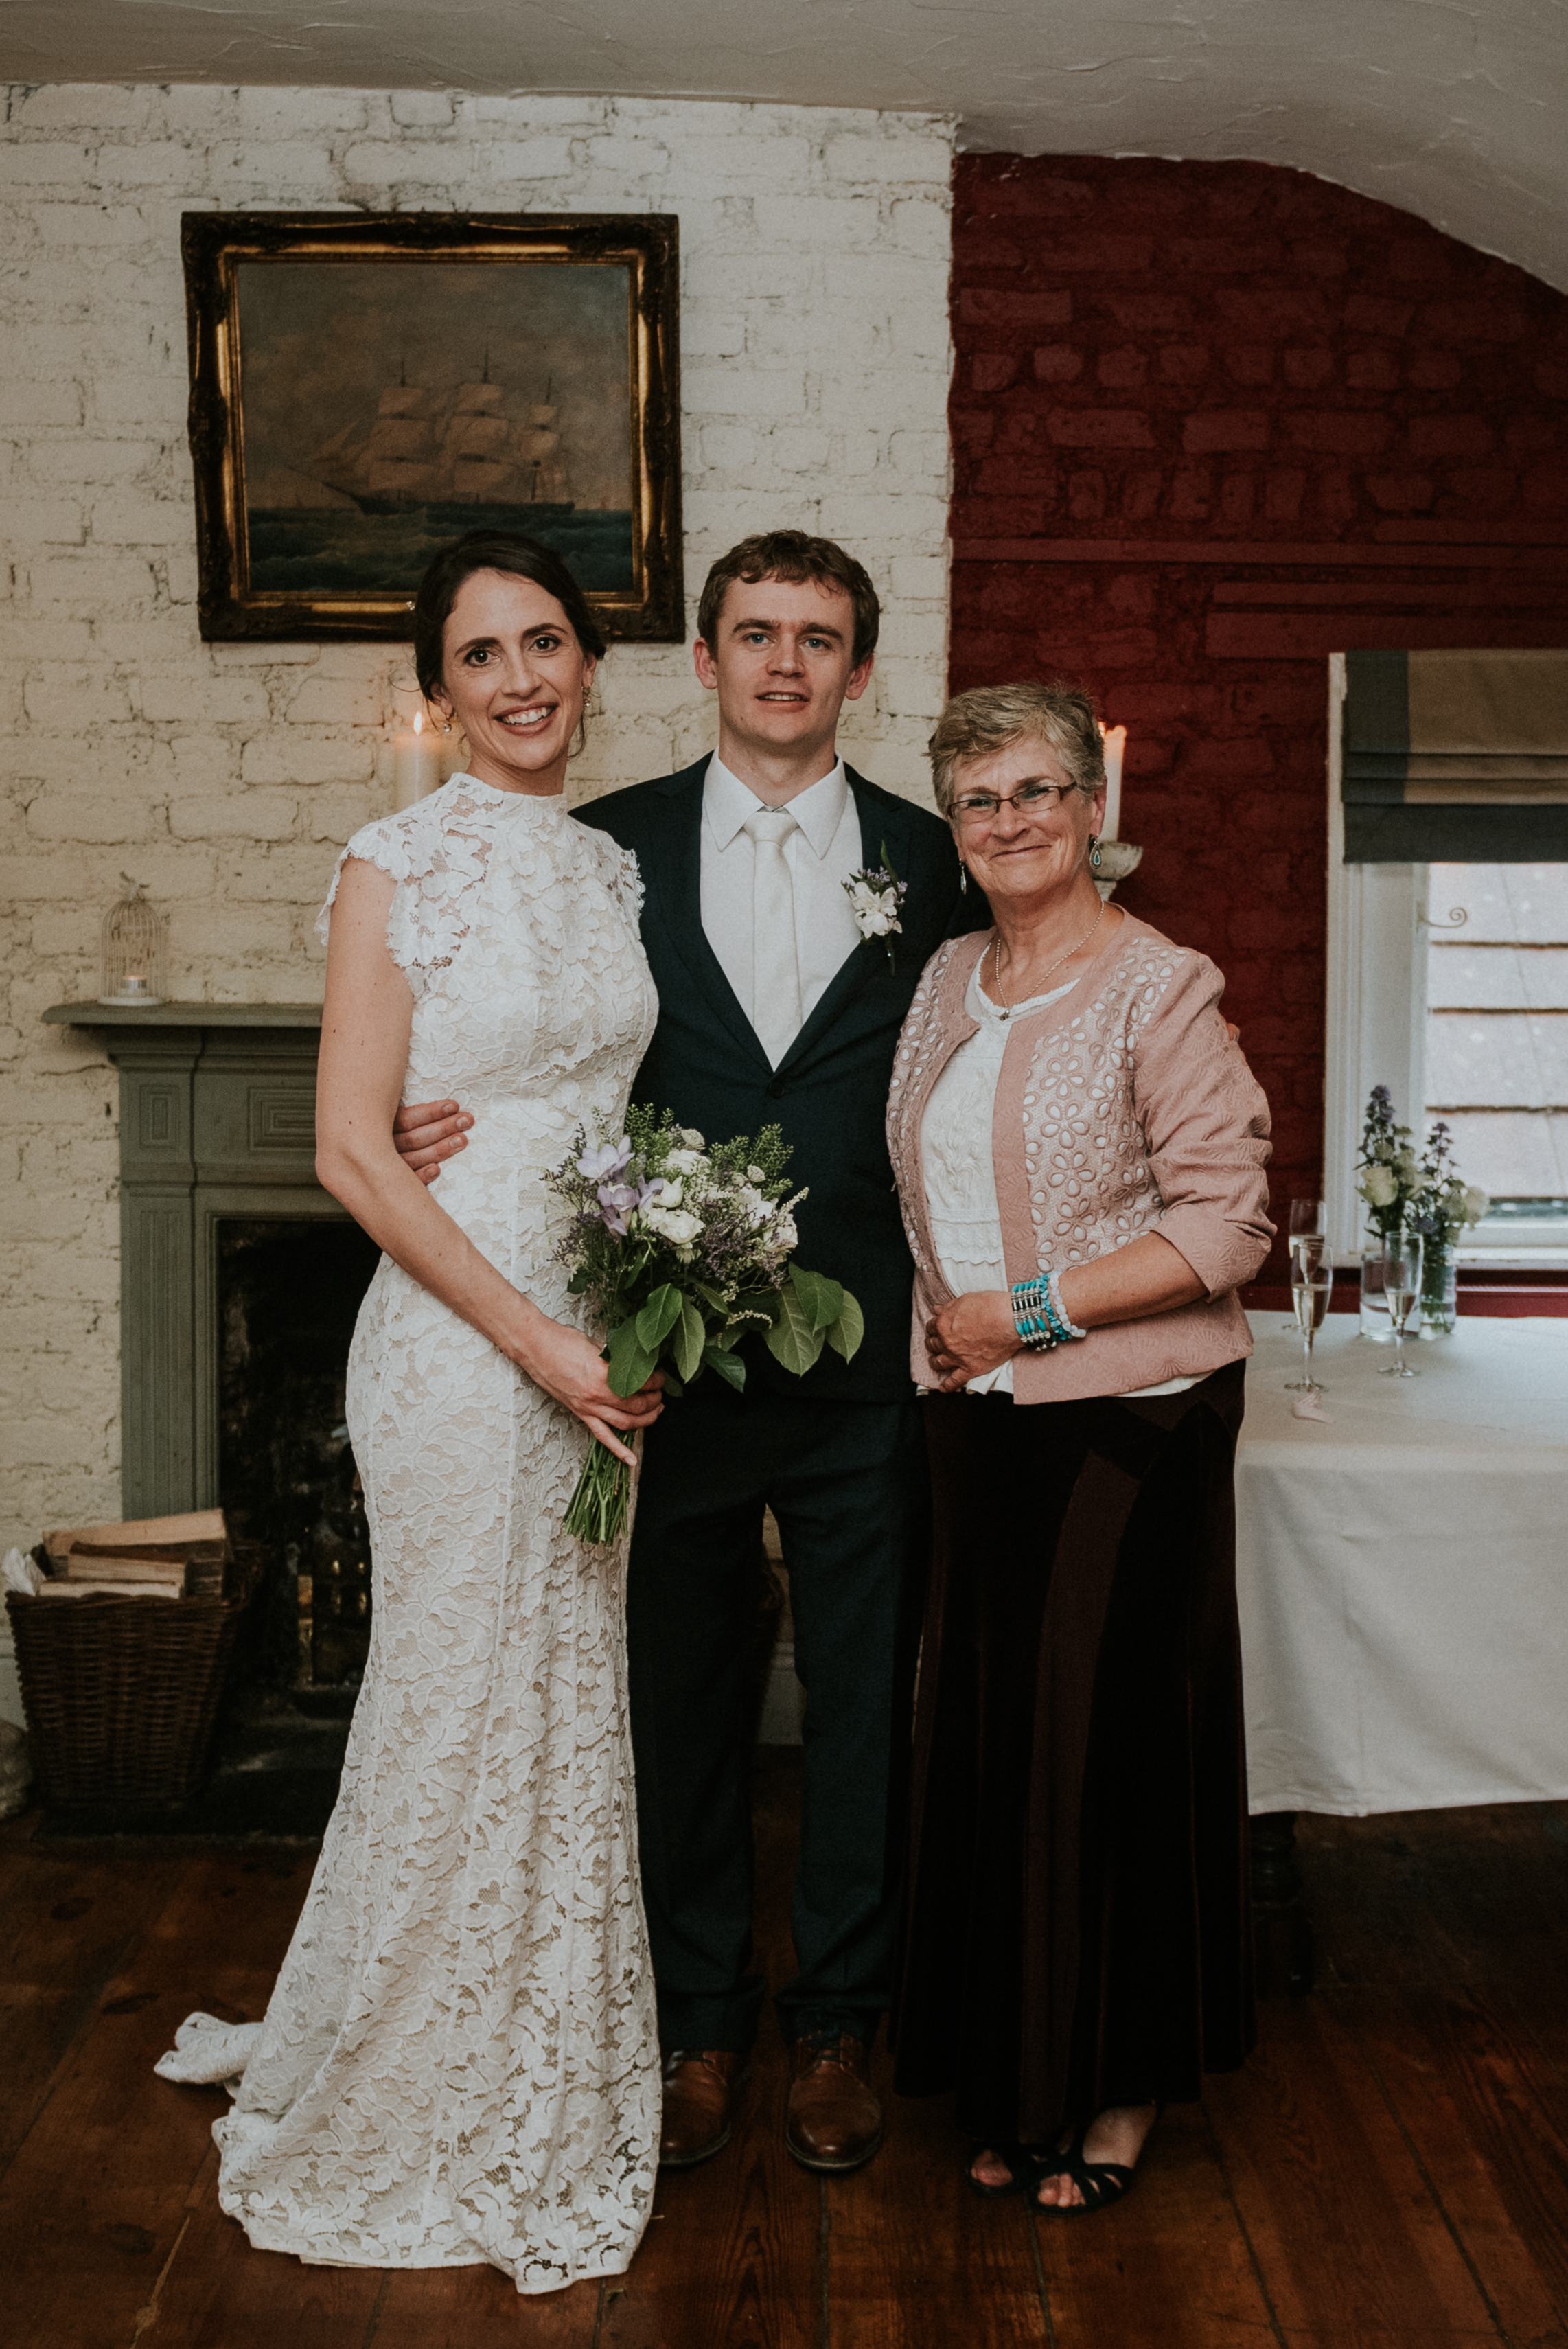 Getting Married in Ireland Gabrielle McAuley Wedding Celebrant Ireland